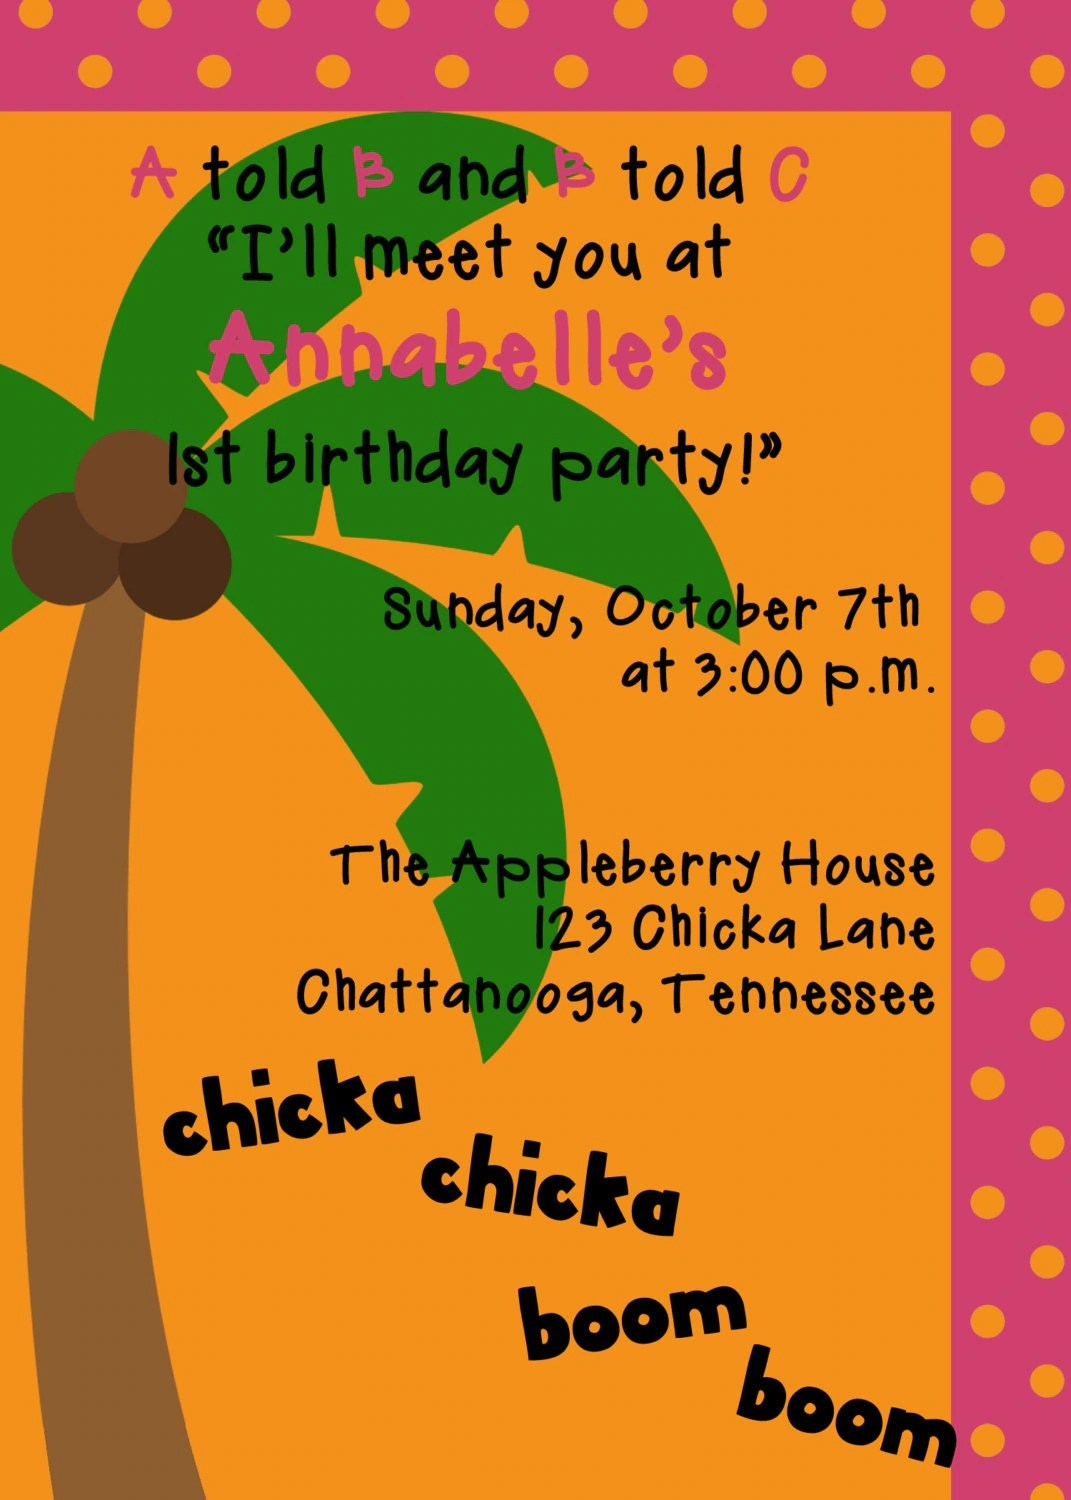 Chicka Chicka Boom Boom Invitation By Sweetappleberry On Etsy